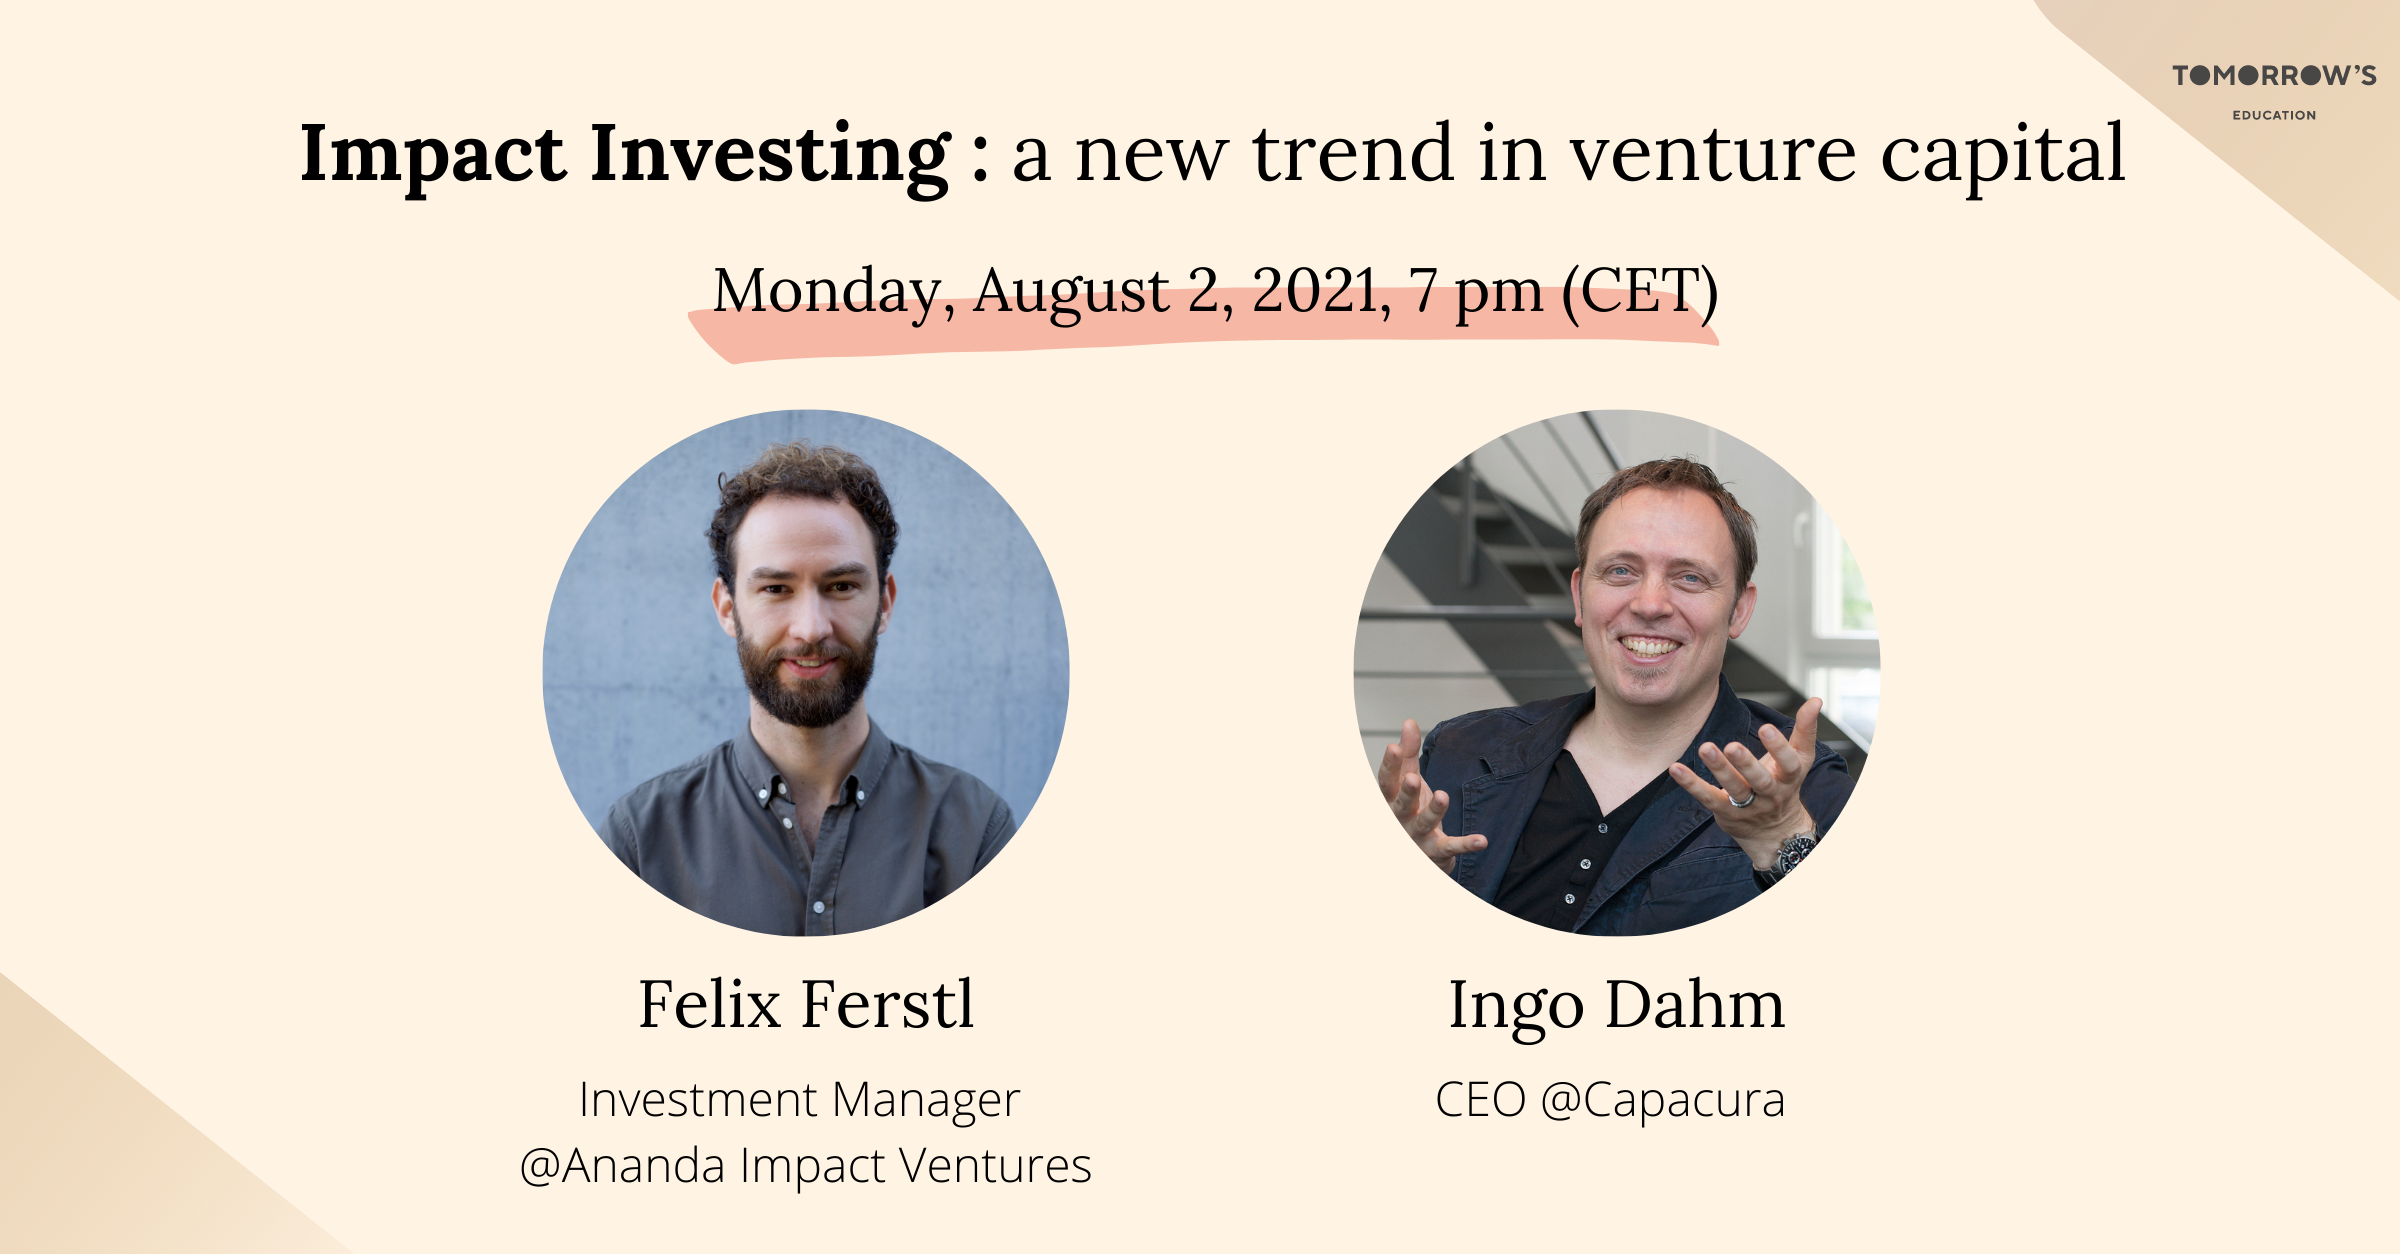 Impact investing - a new trend in venture capital